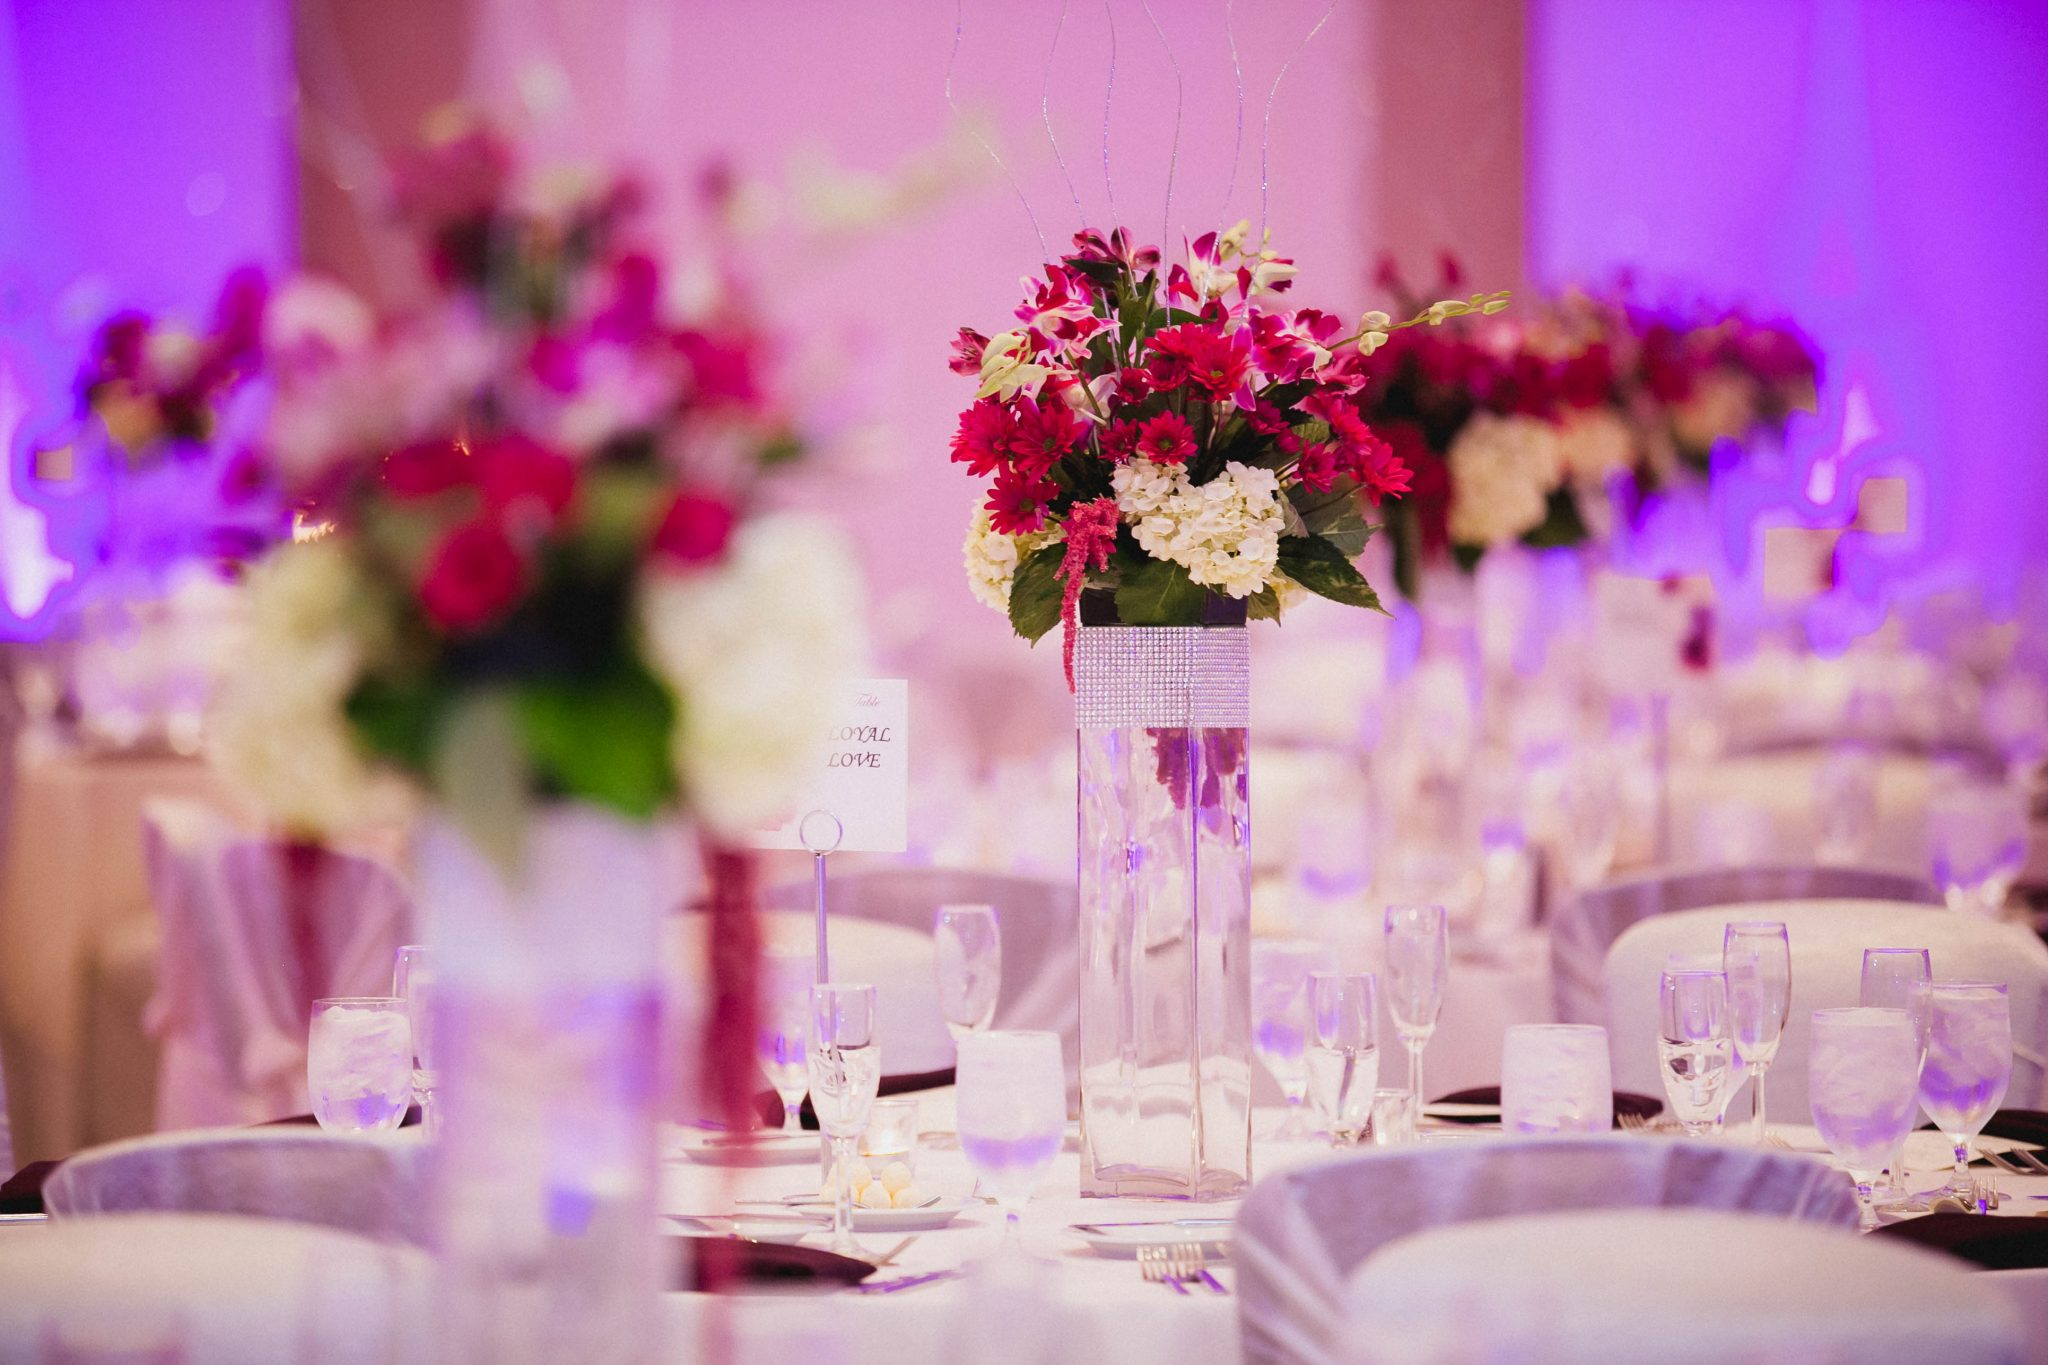 Details of wedding reception pink flower centerpieces on dinner tables